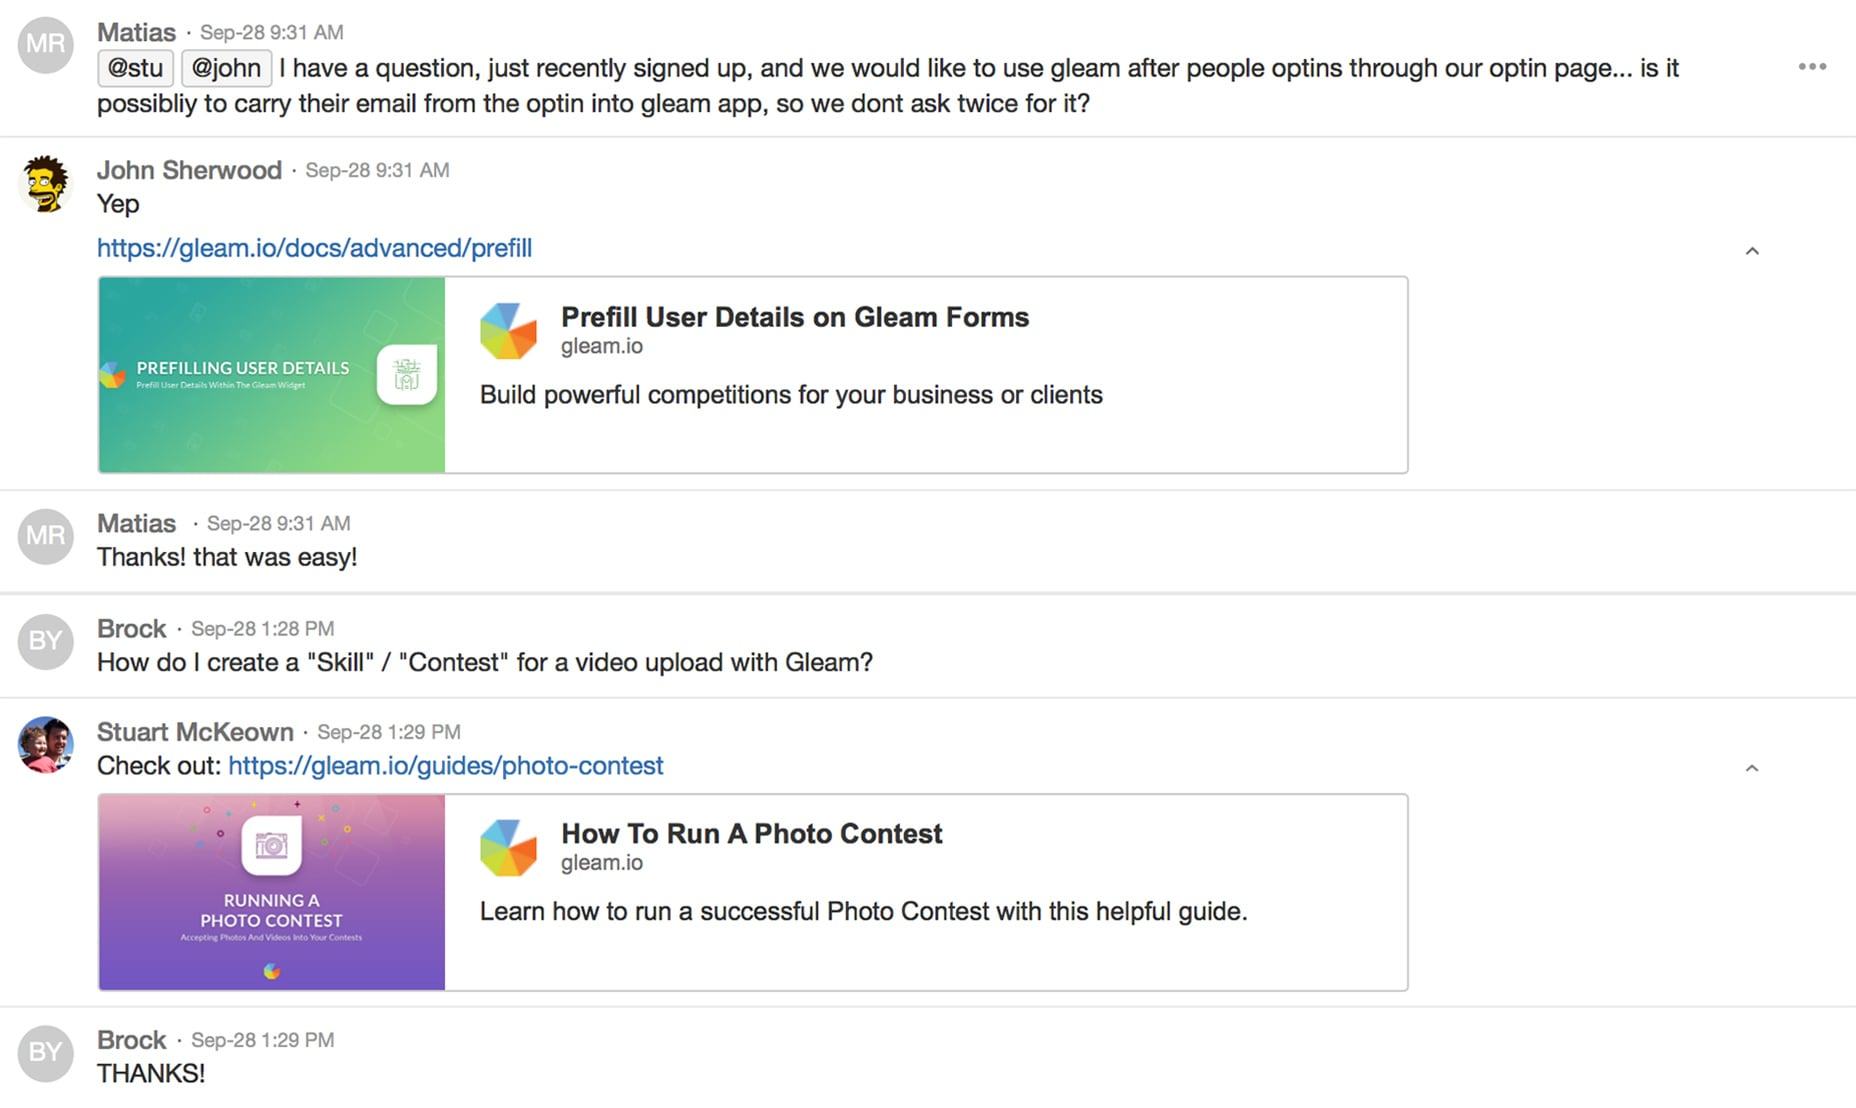 Gleam Support Public HipChat Room